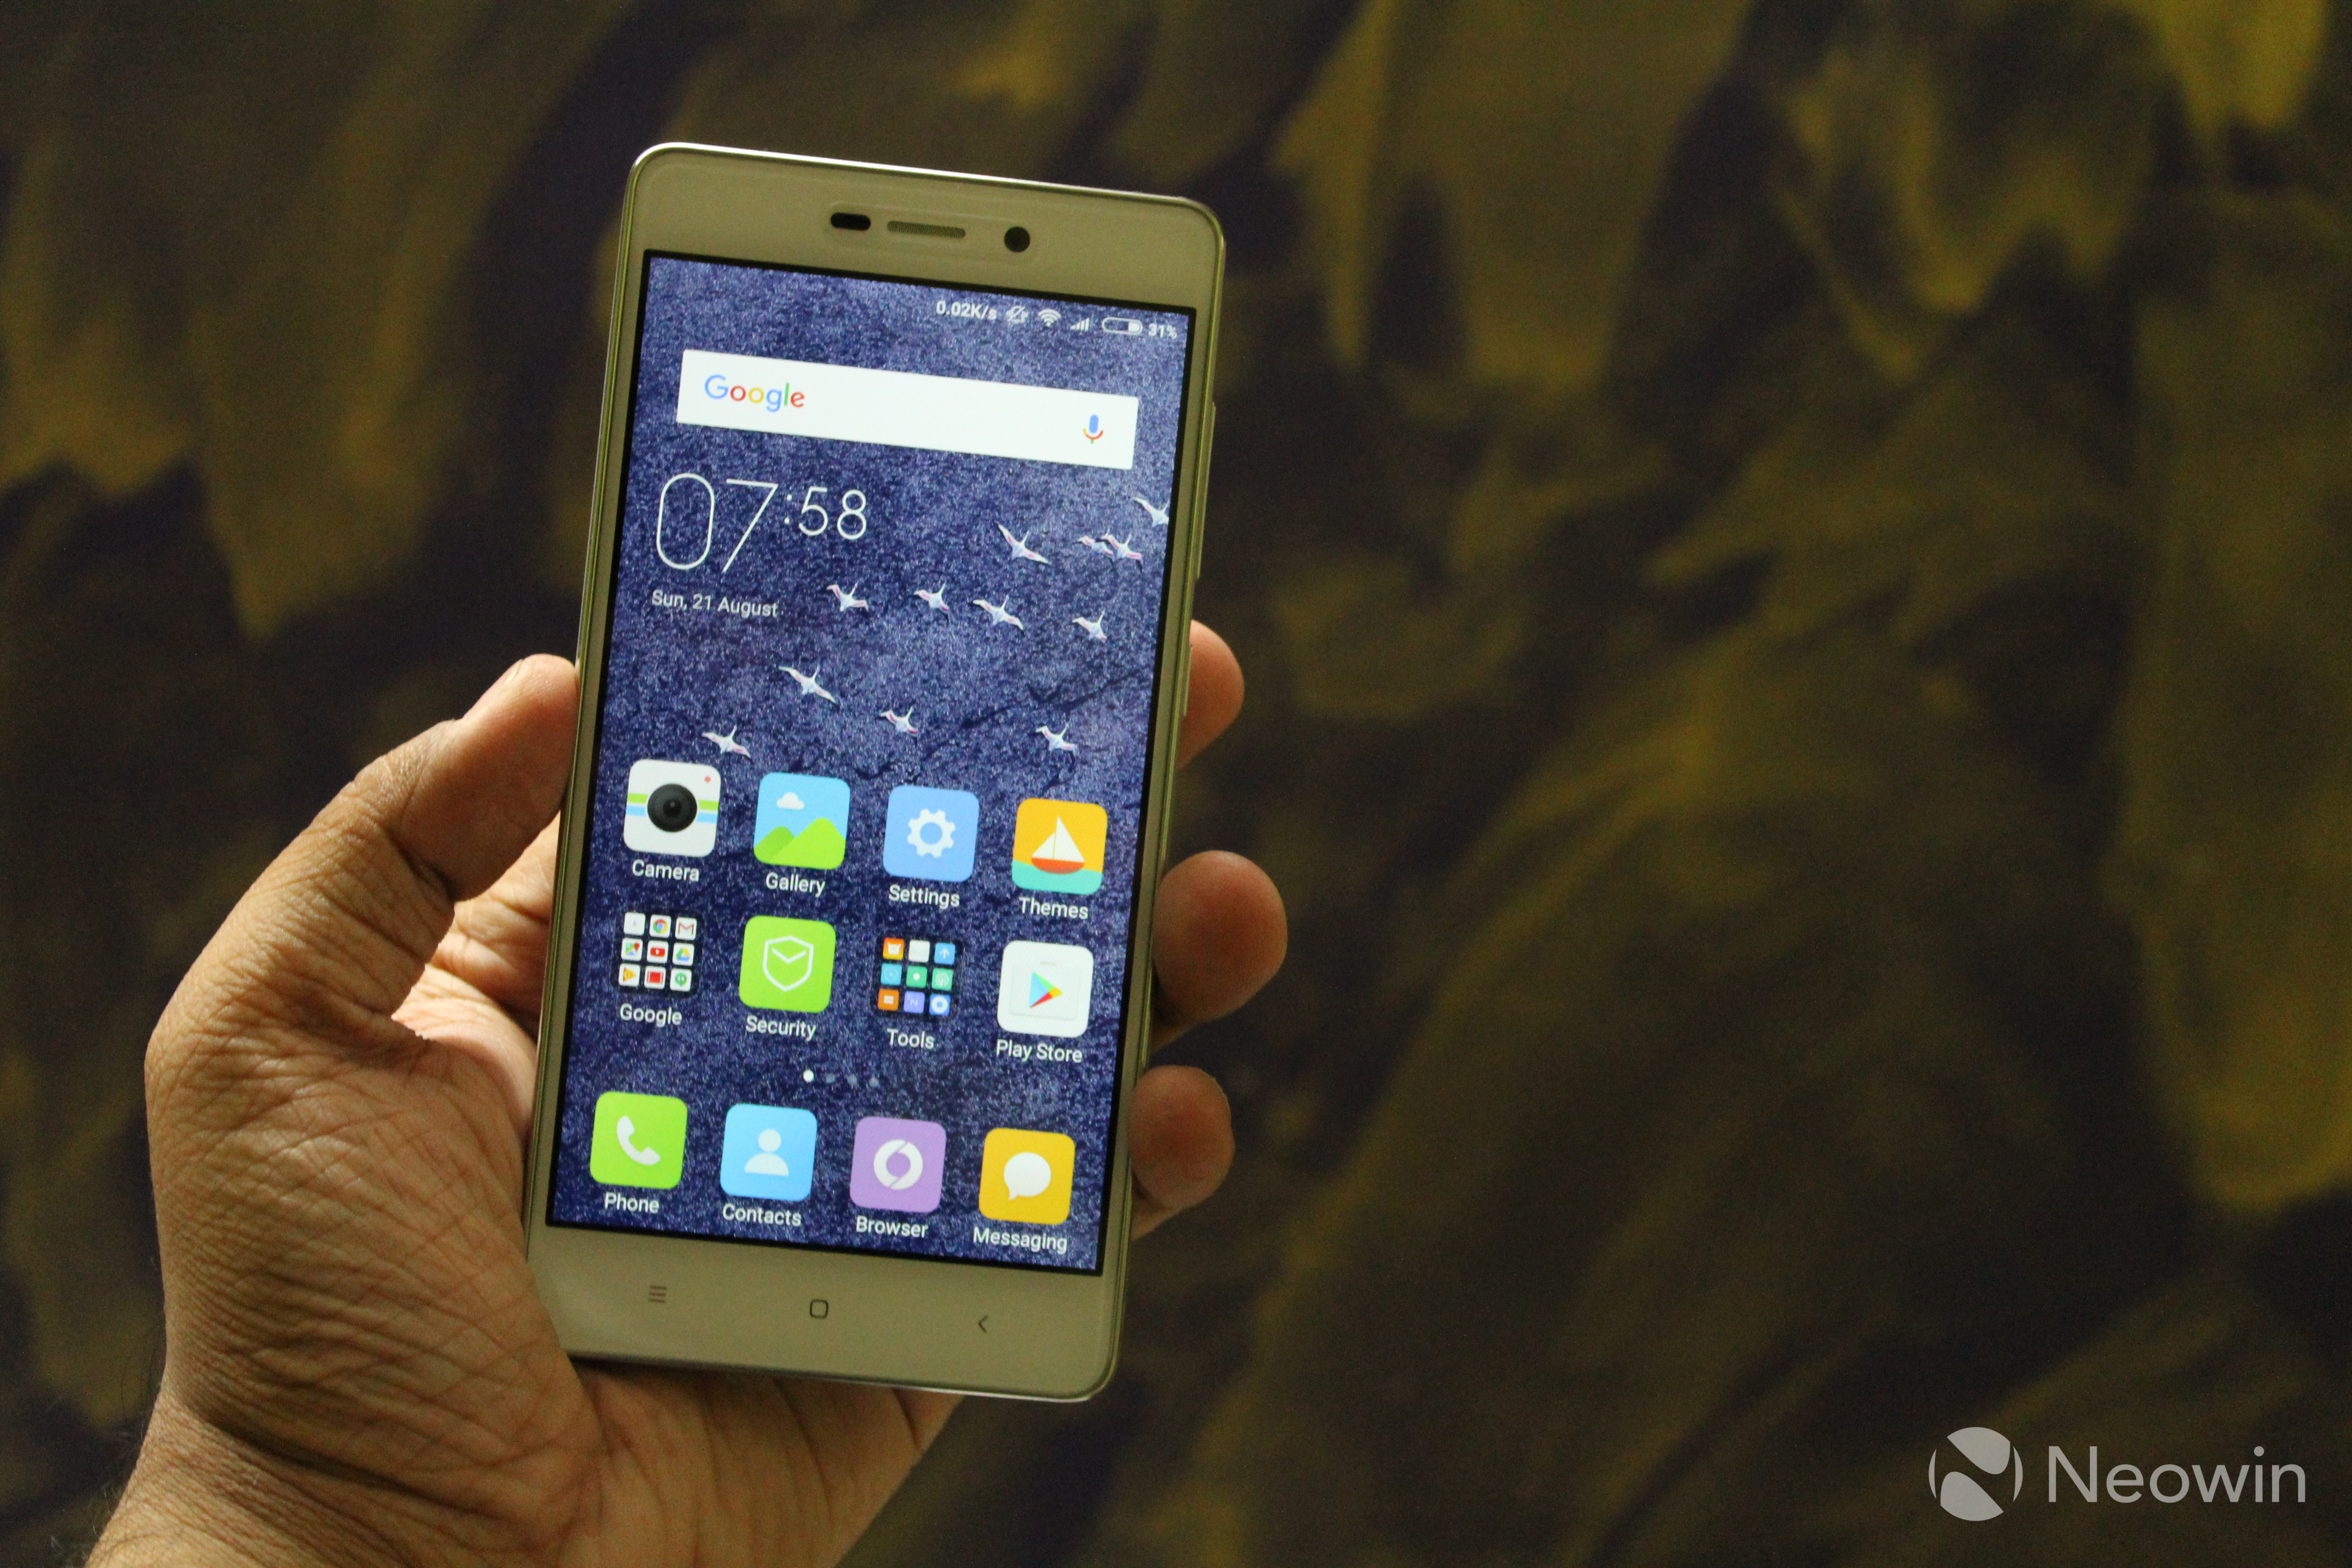 Xiaomi Redmi 3s Prime Review Plenty Of Hits A Few Misses Neowin 3x Ram 2 32gb Having Said That The Device Is Good Looking And Has Premium Feel To It Owing Metal Back Glass Front Smartphone Doesnt Feature